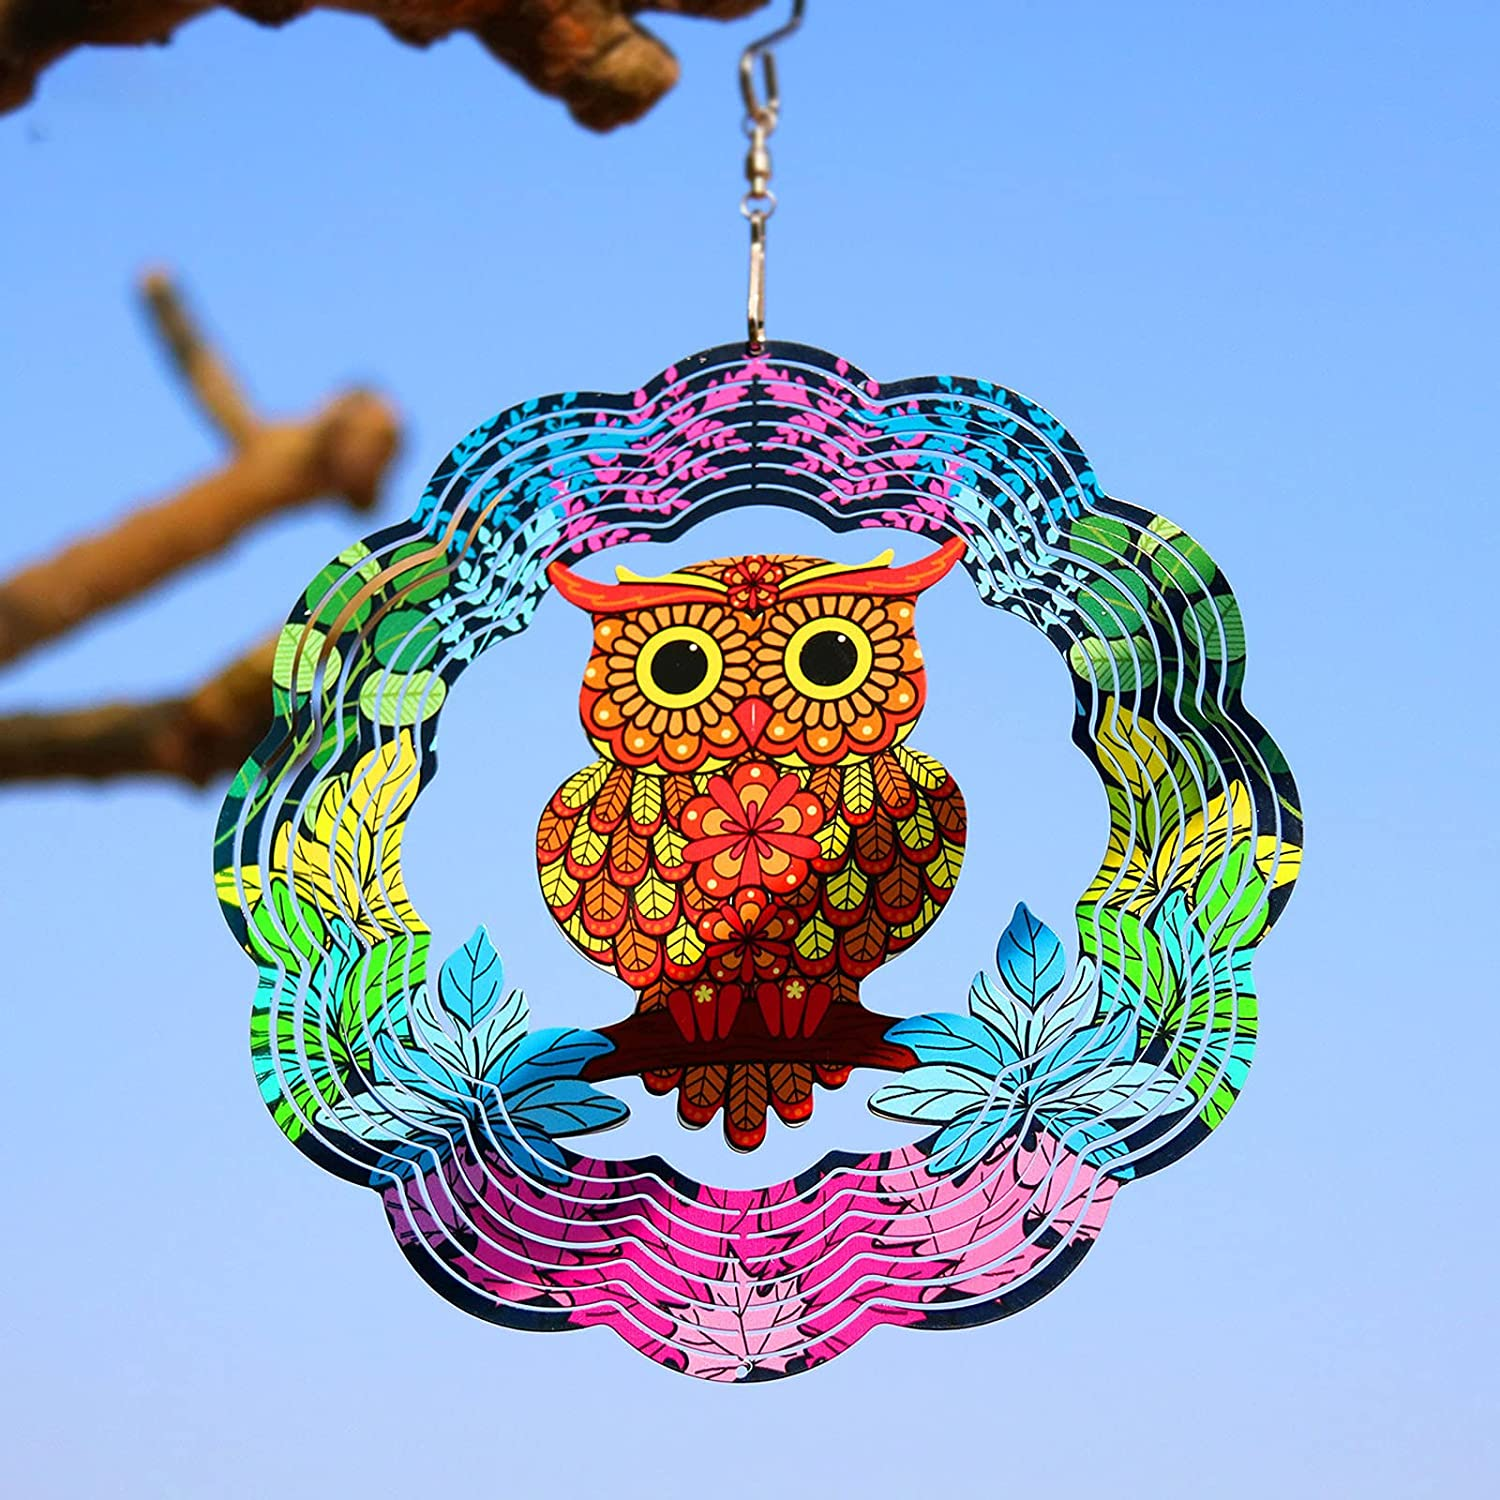 Special price for a limited time 3D Wind Spinners Outdoor Metal Sun Garden Popularity Decor Home Win Catcher